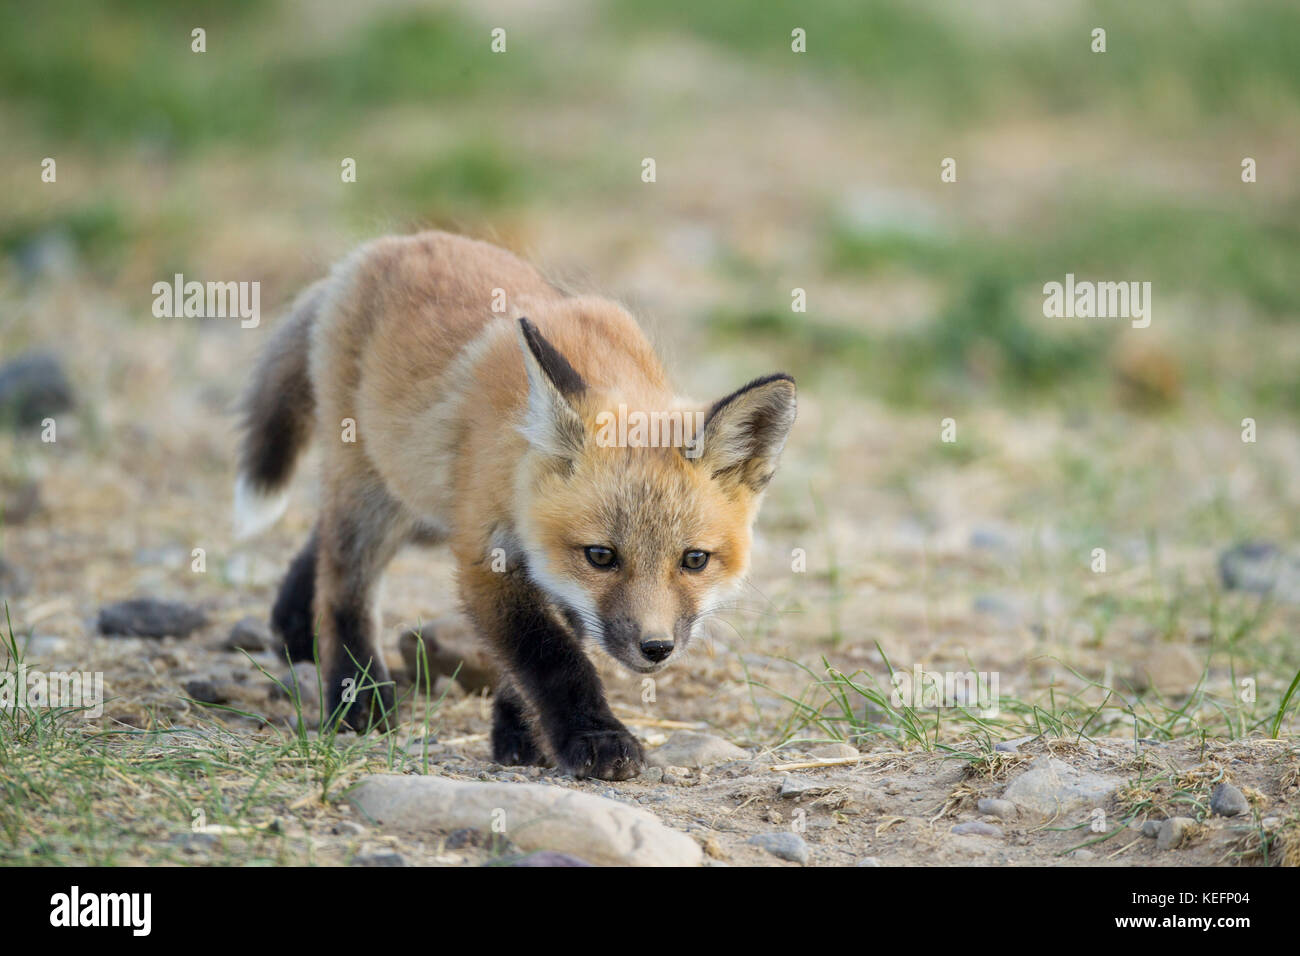 Red fox pup - Stock Image